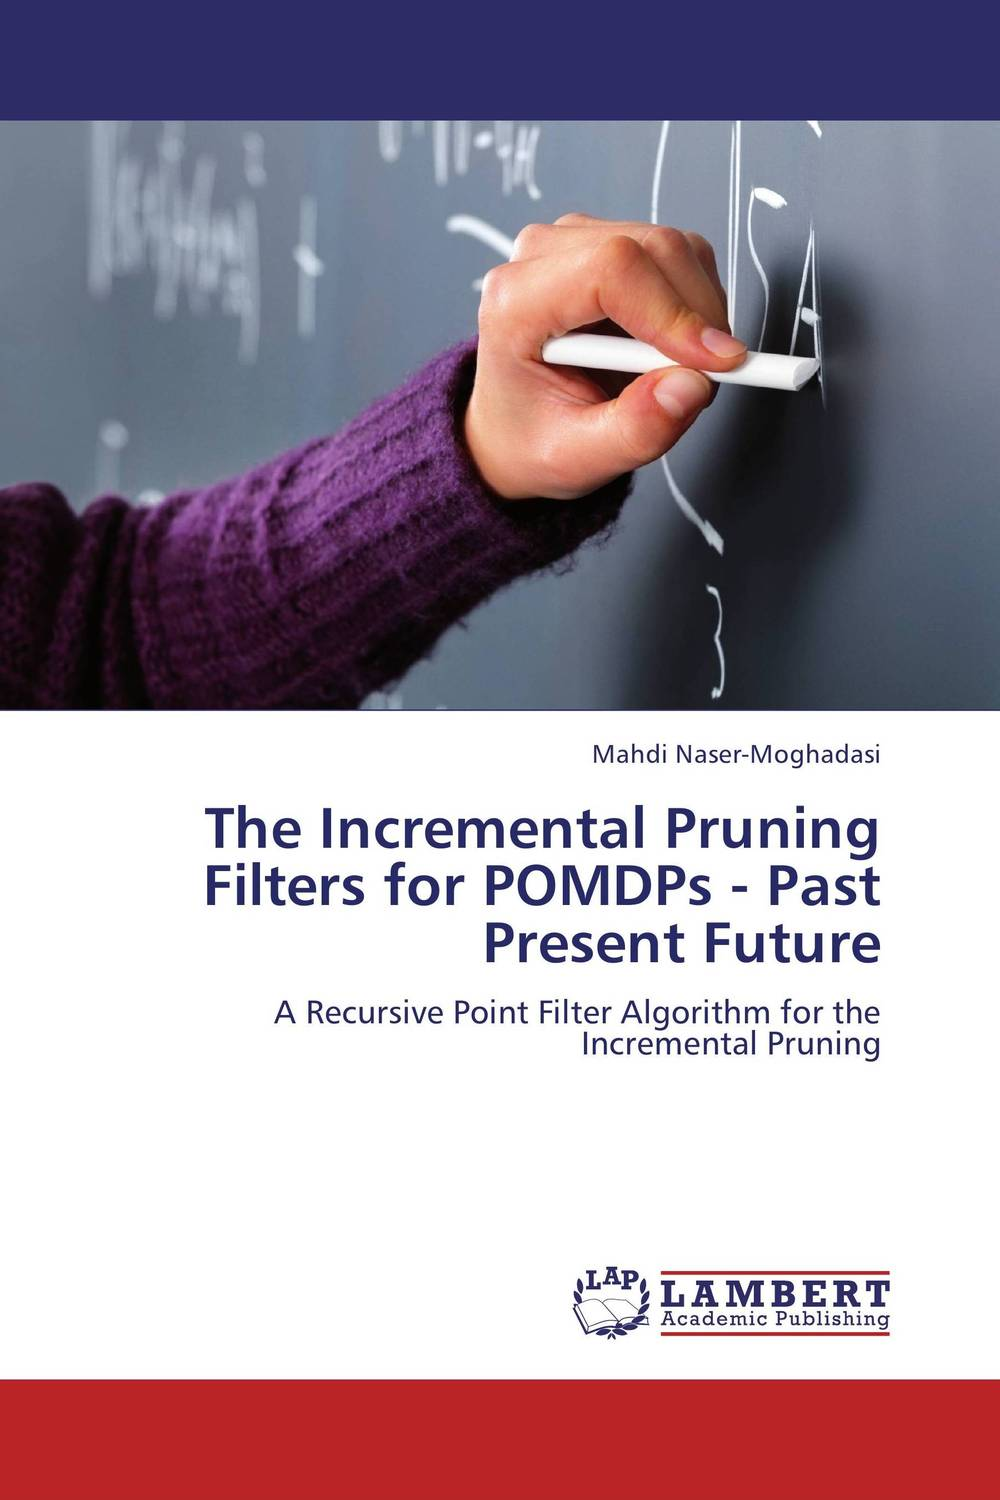 The Incremental Pruning Filters for POMDPs - Past Present Future marc vollenweider mind machine a decision model for optimizing and implementing analytics